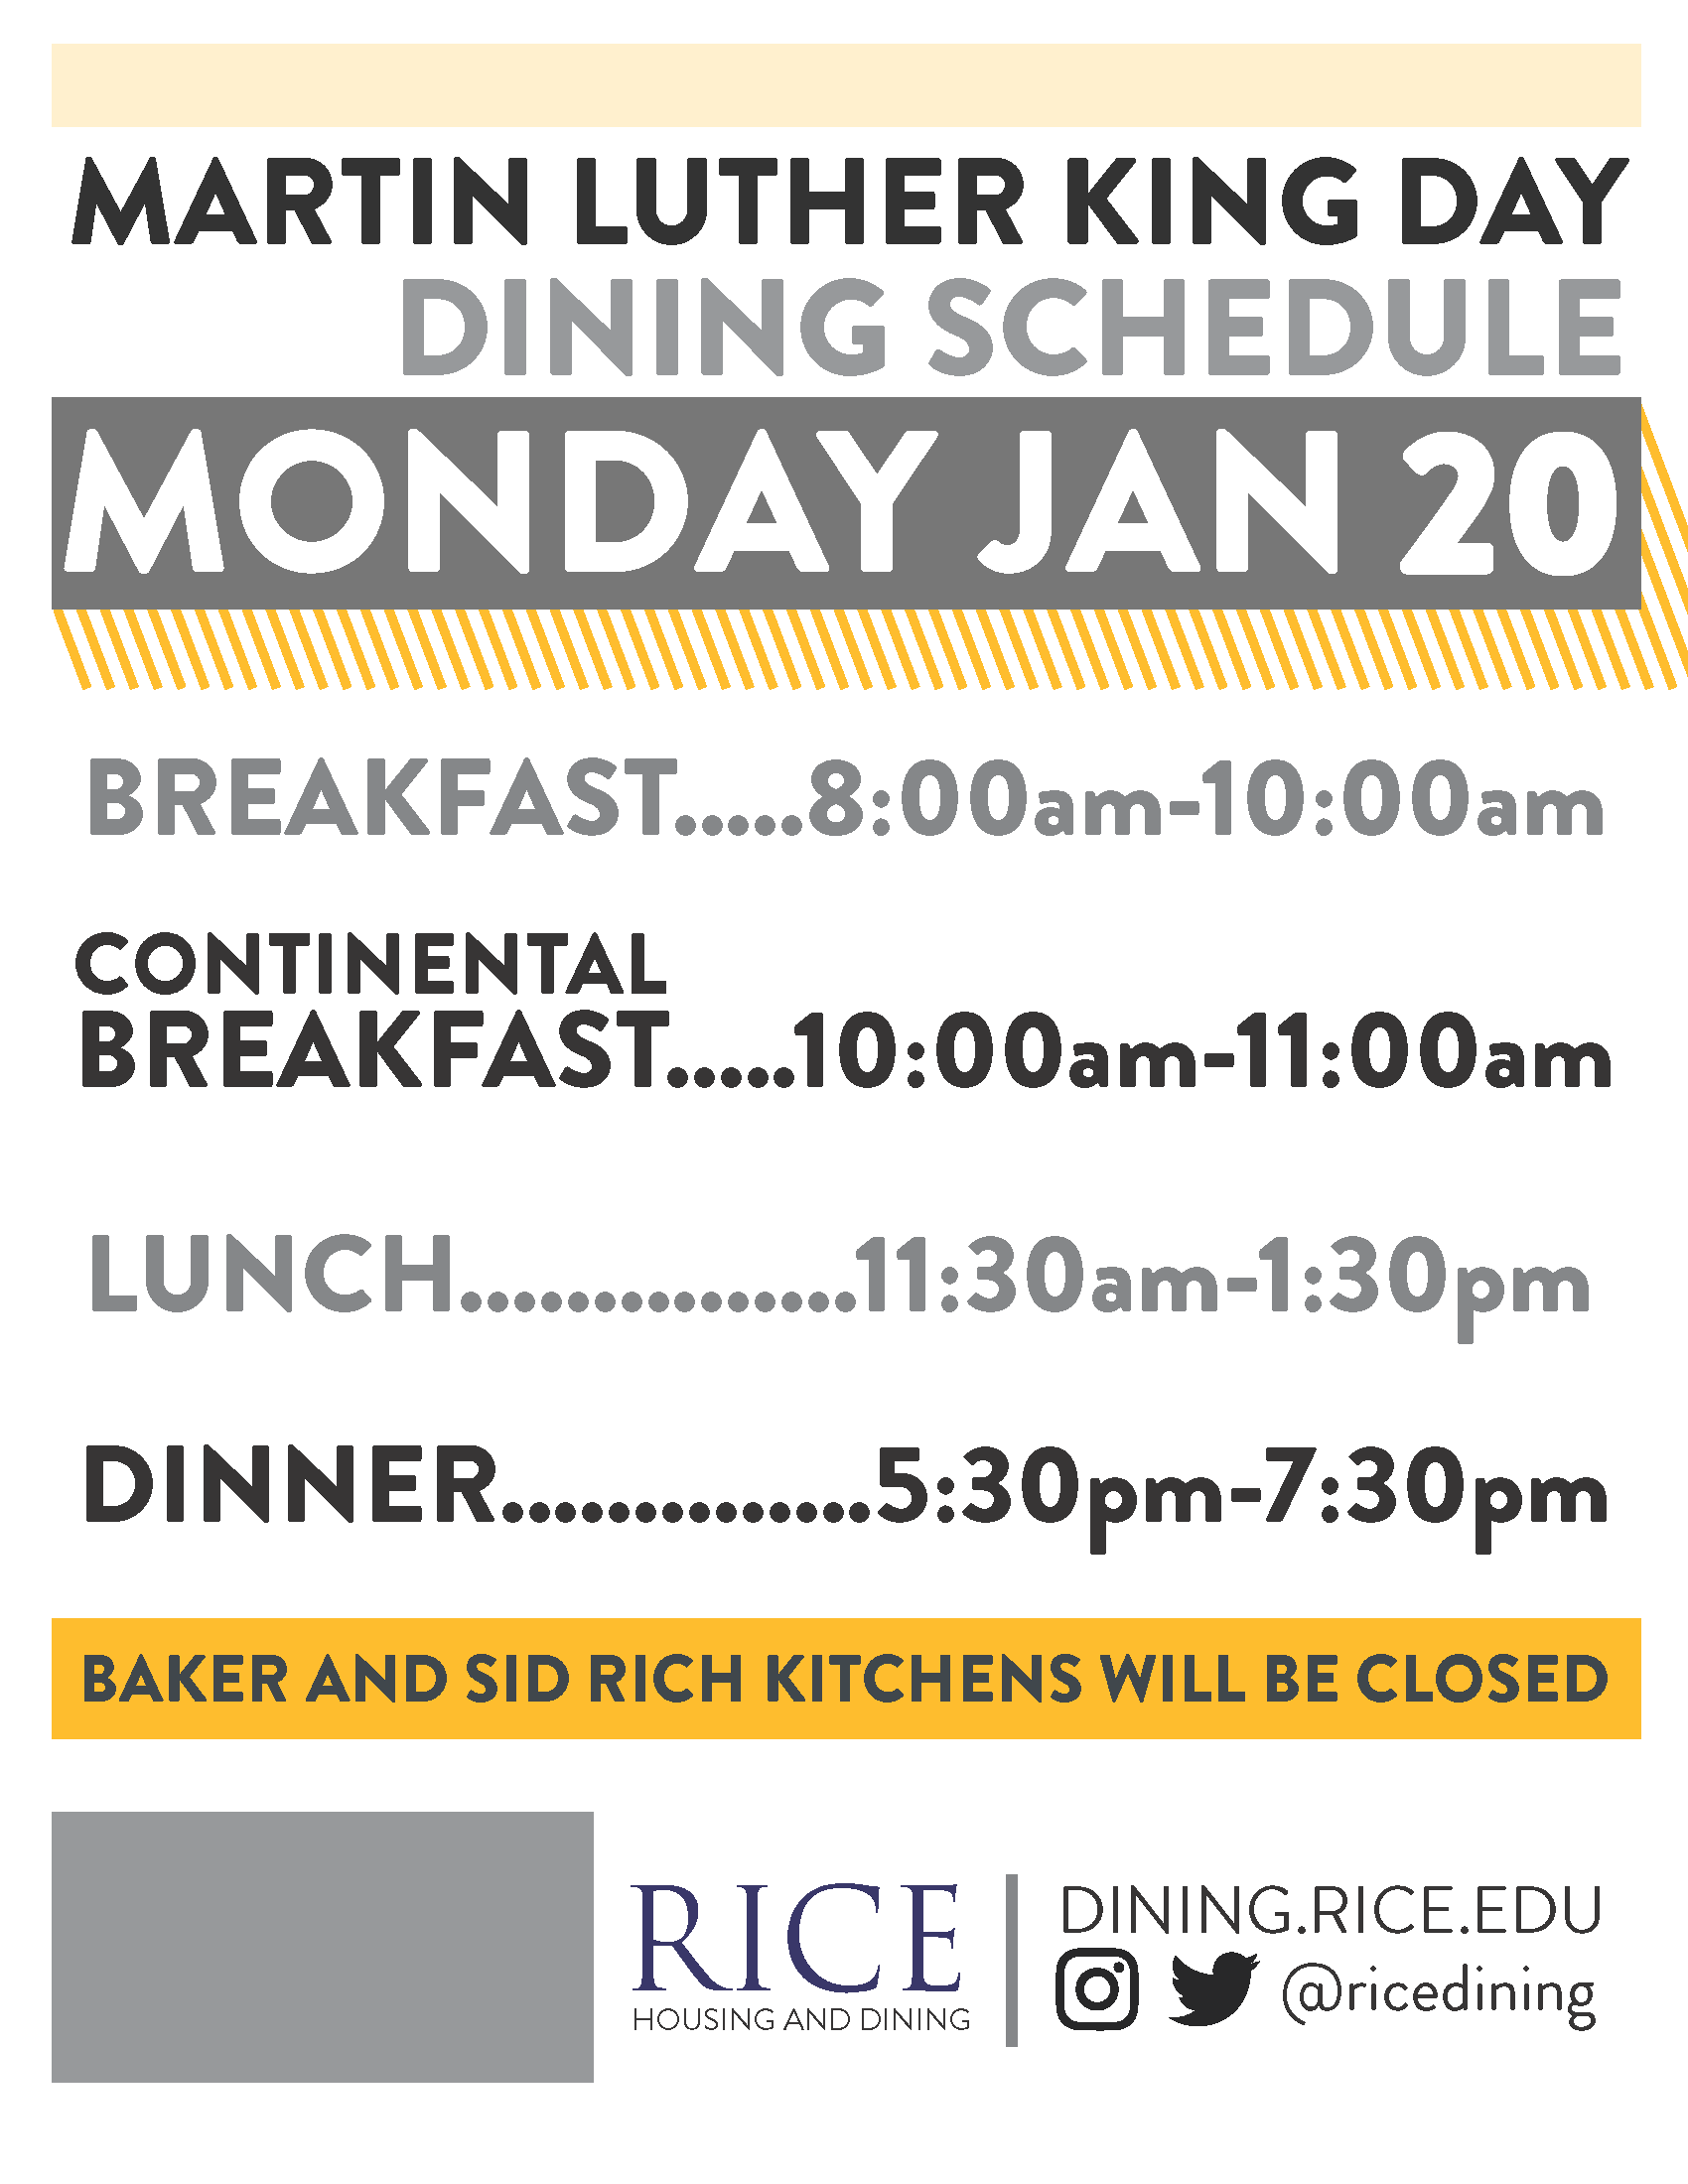 Martin Luther King Jr. Day Meal Schedule